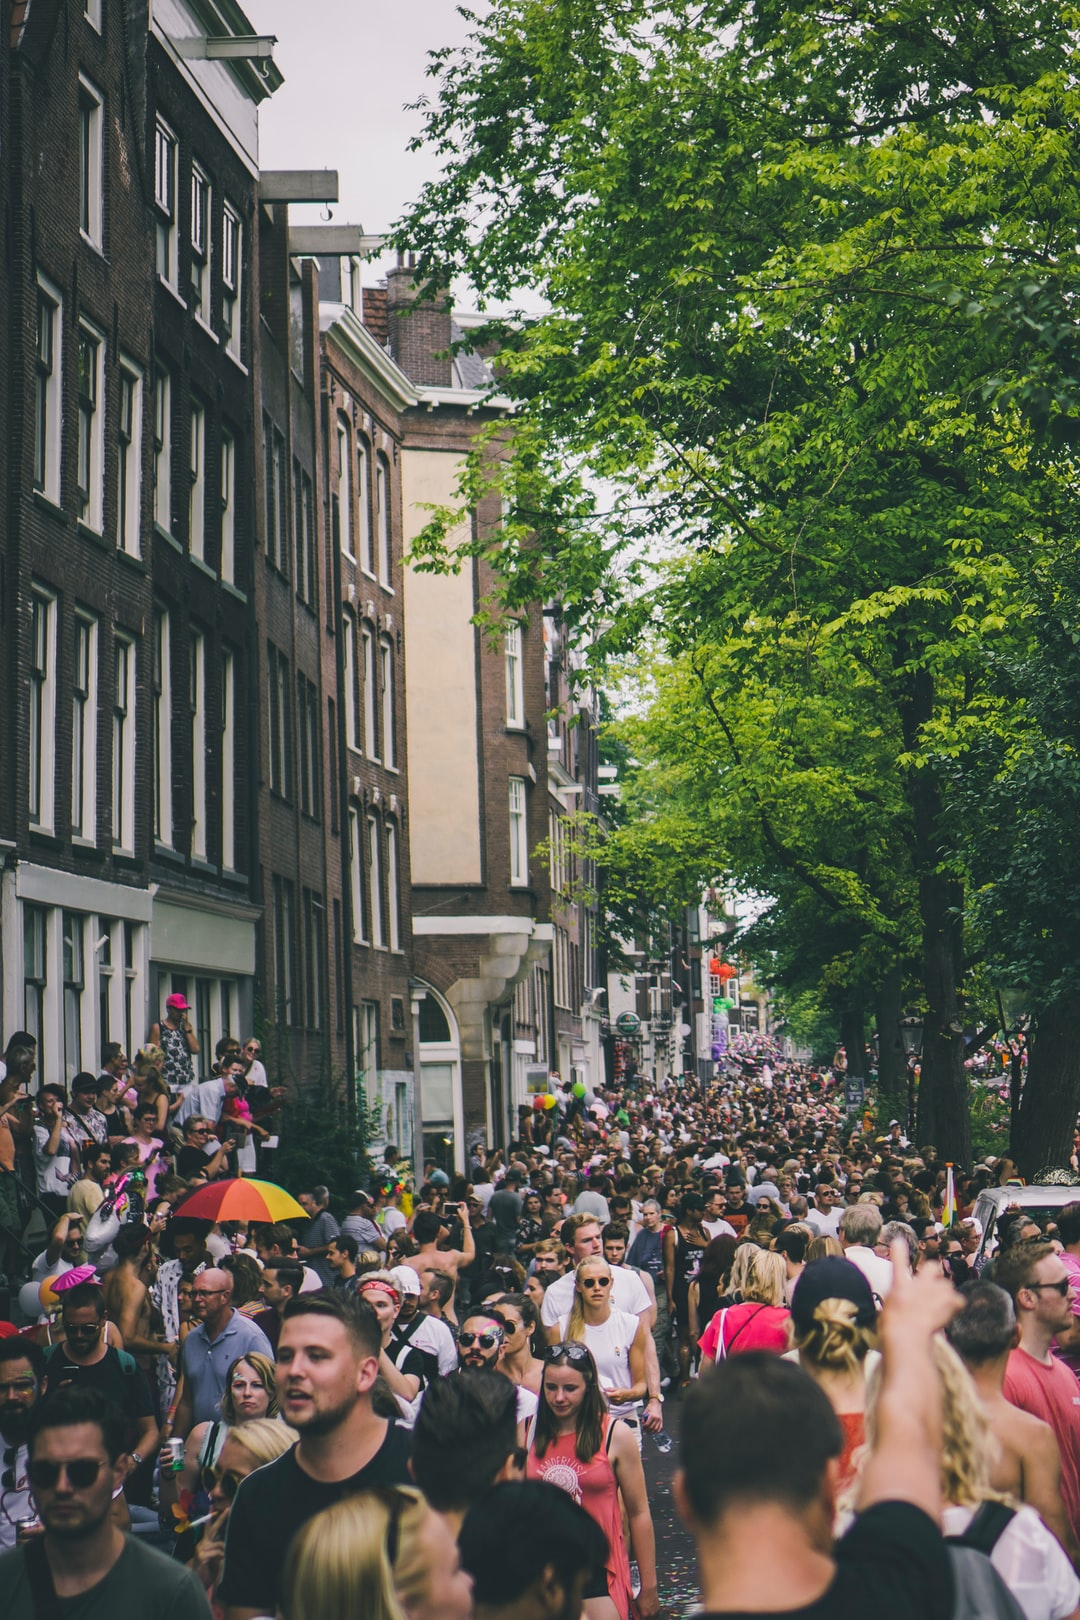 crowd of <b>people</b> walking the streets during daytime photo – Free ...